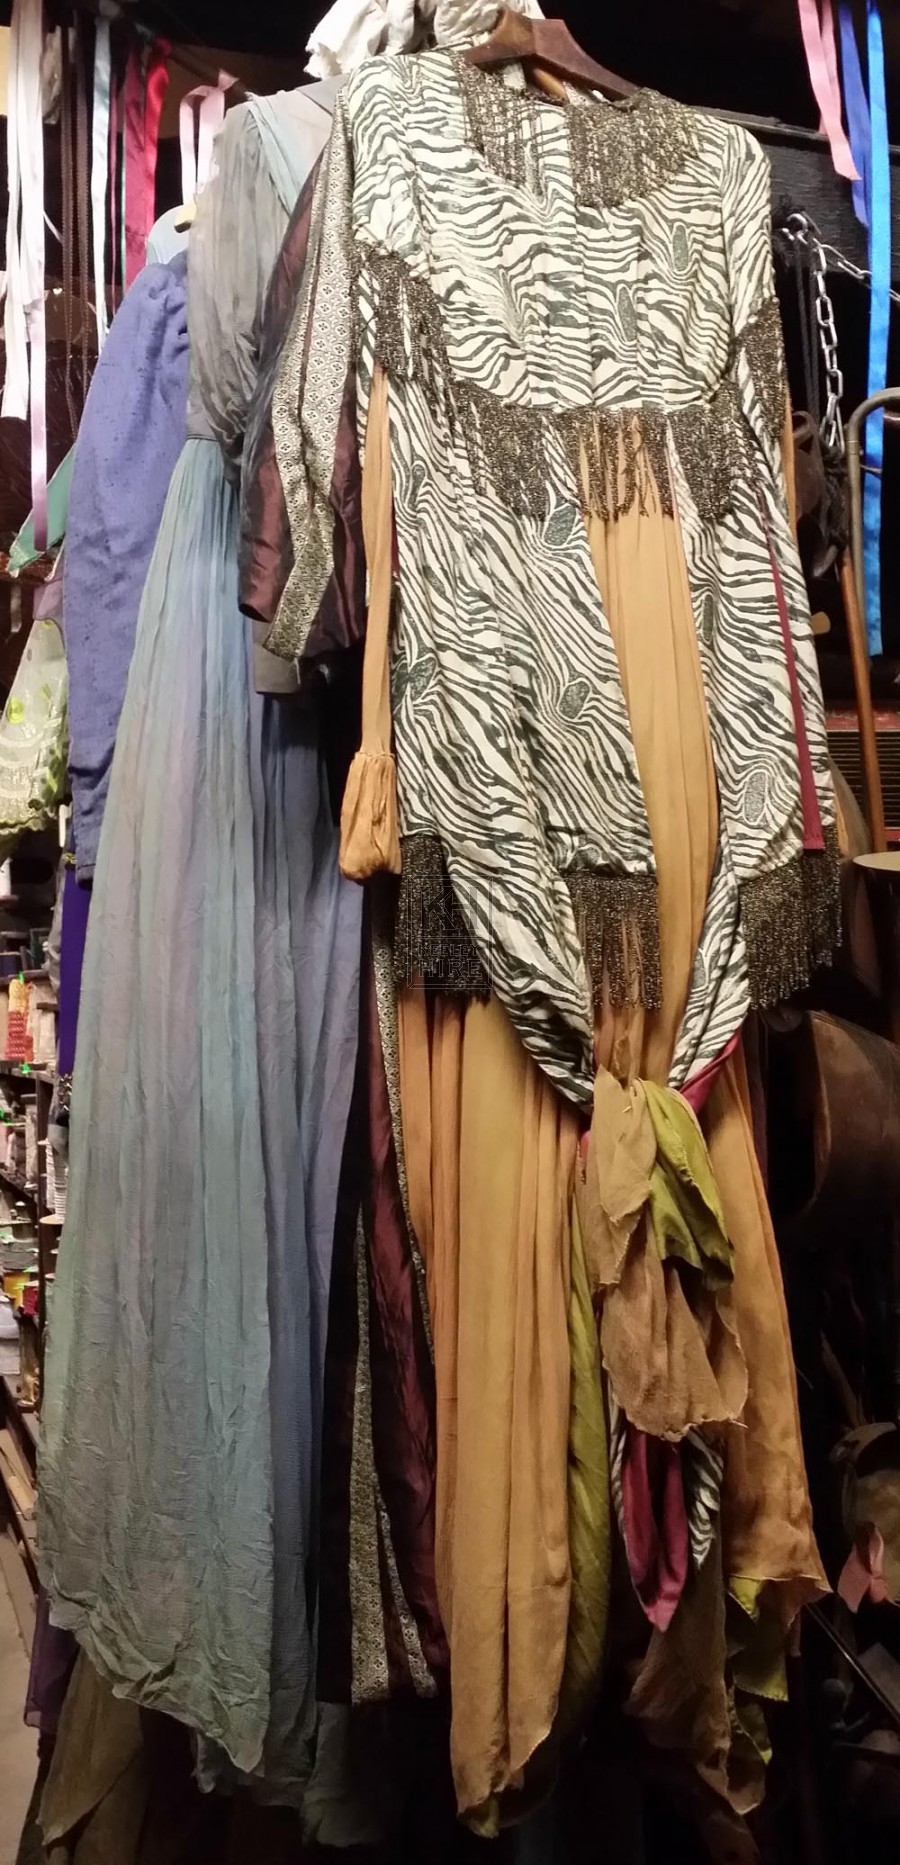 Assorted theatrical costumes